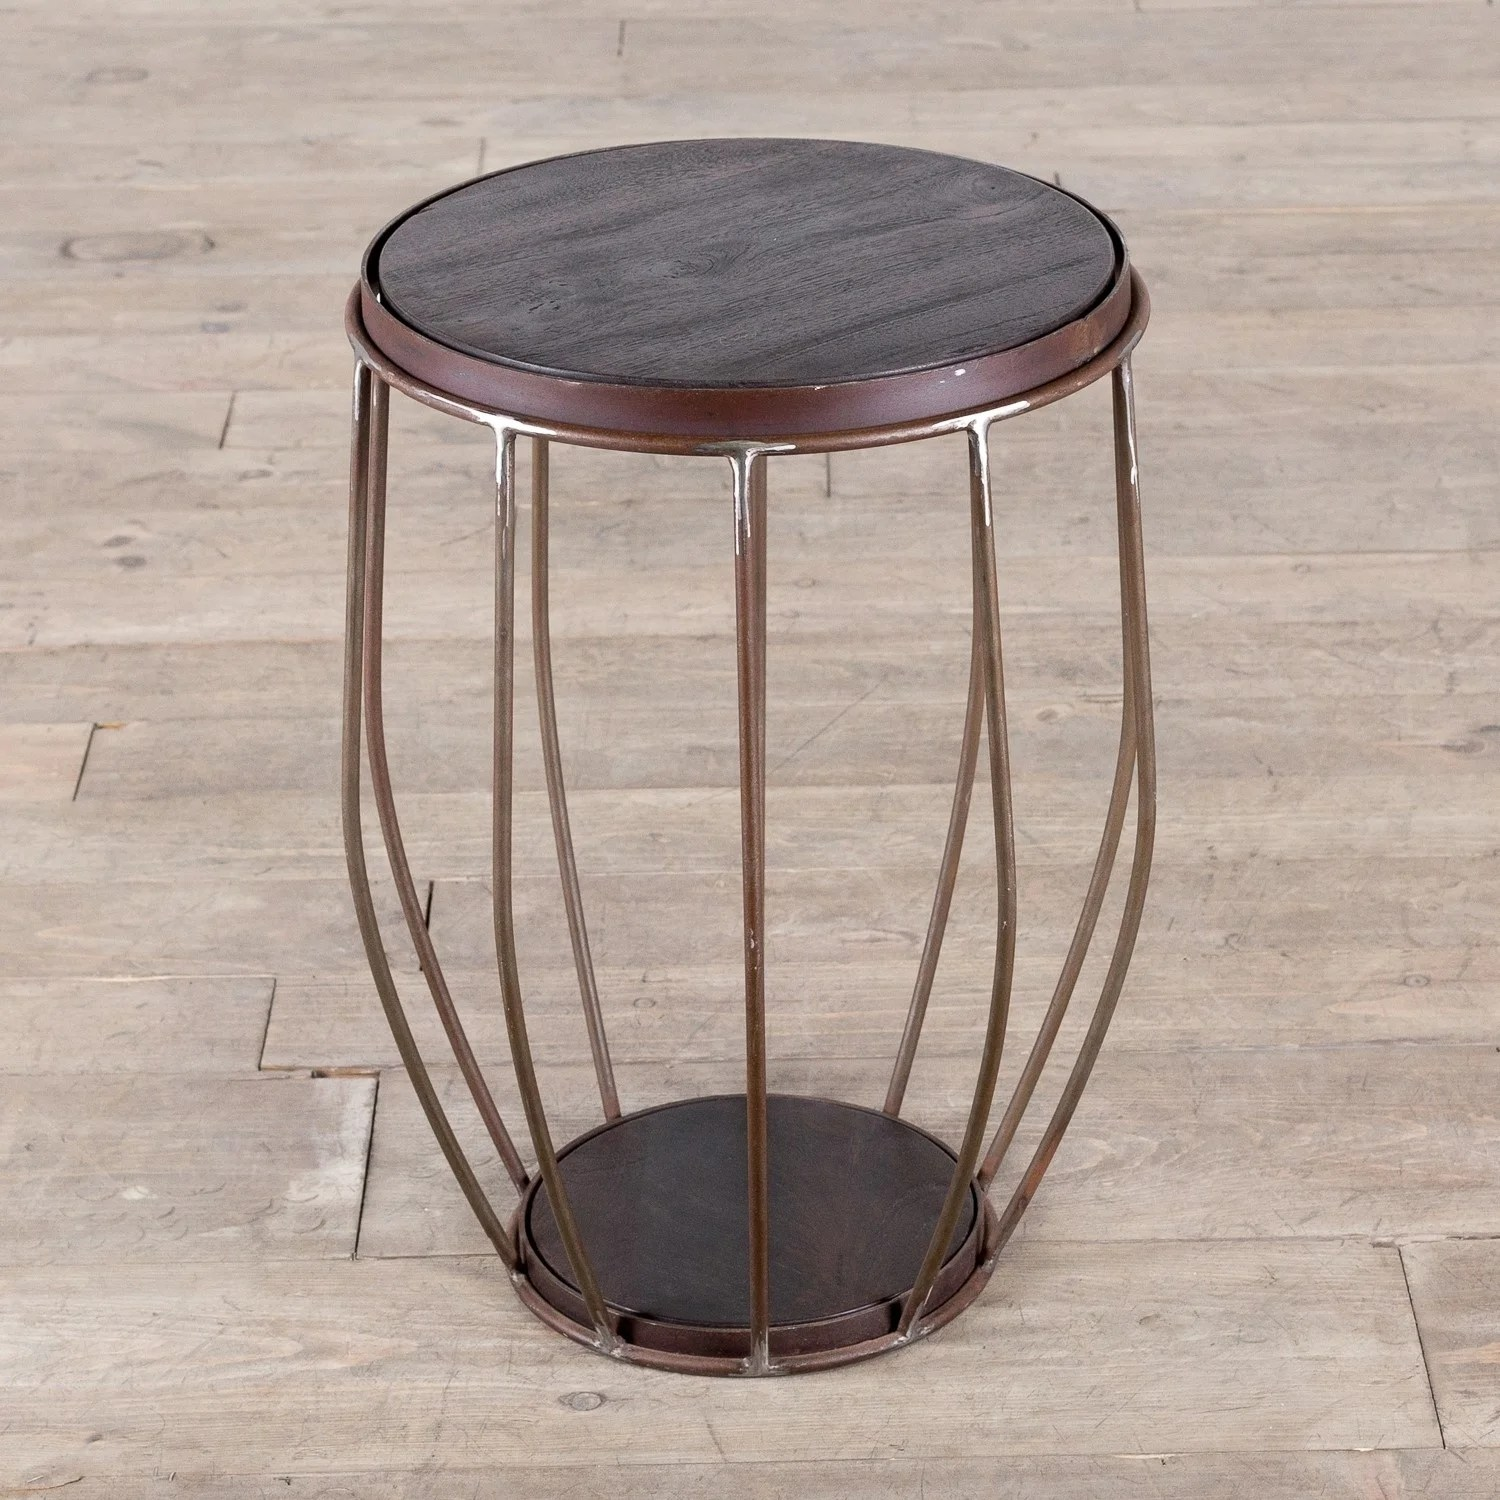 Classic Table Shapes Iron And Mango Wood Round Metal Stool End Table